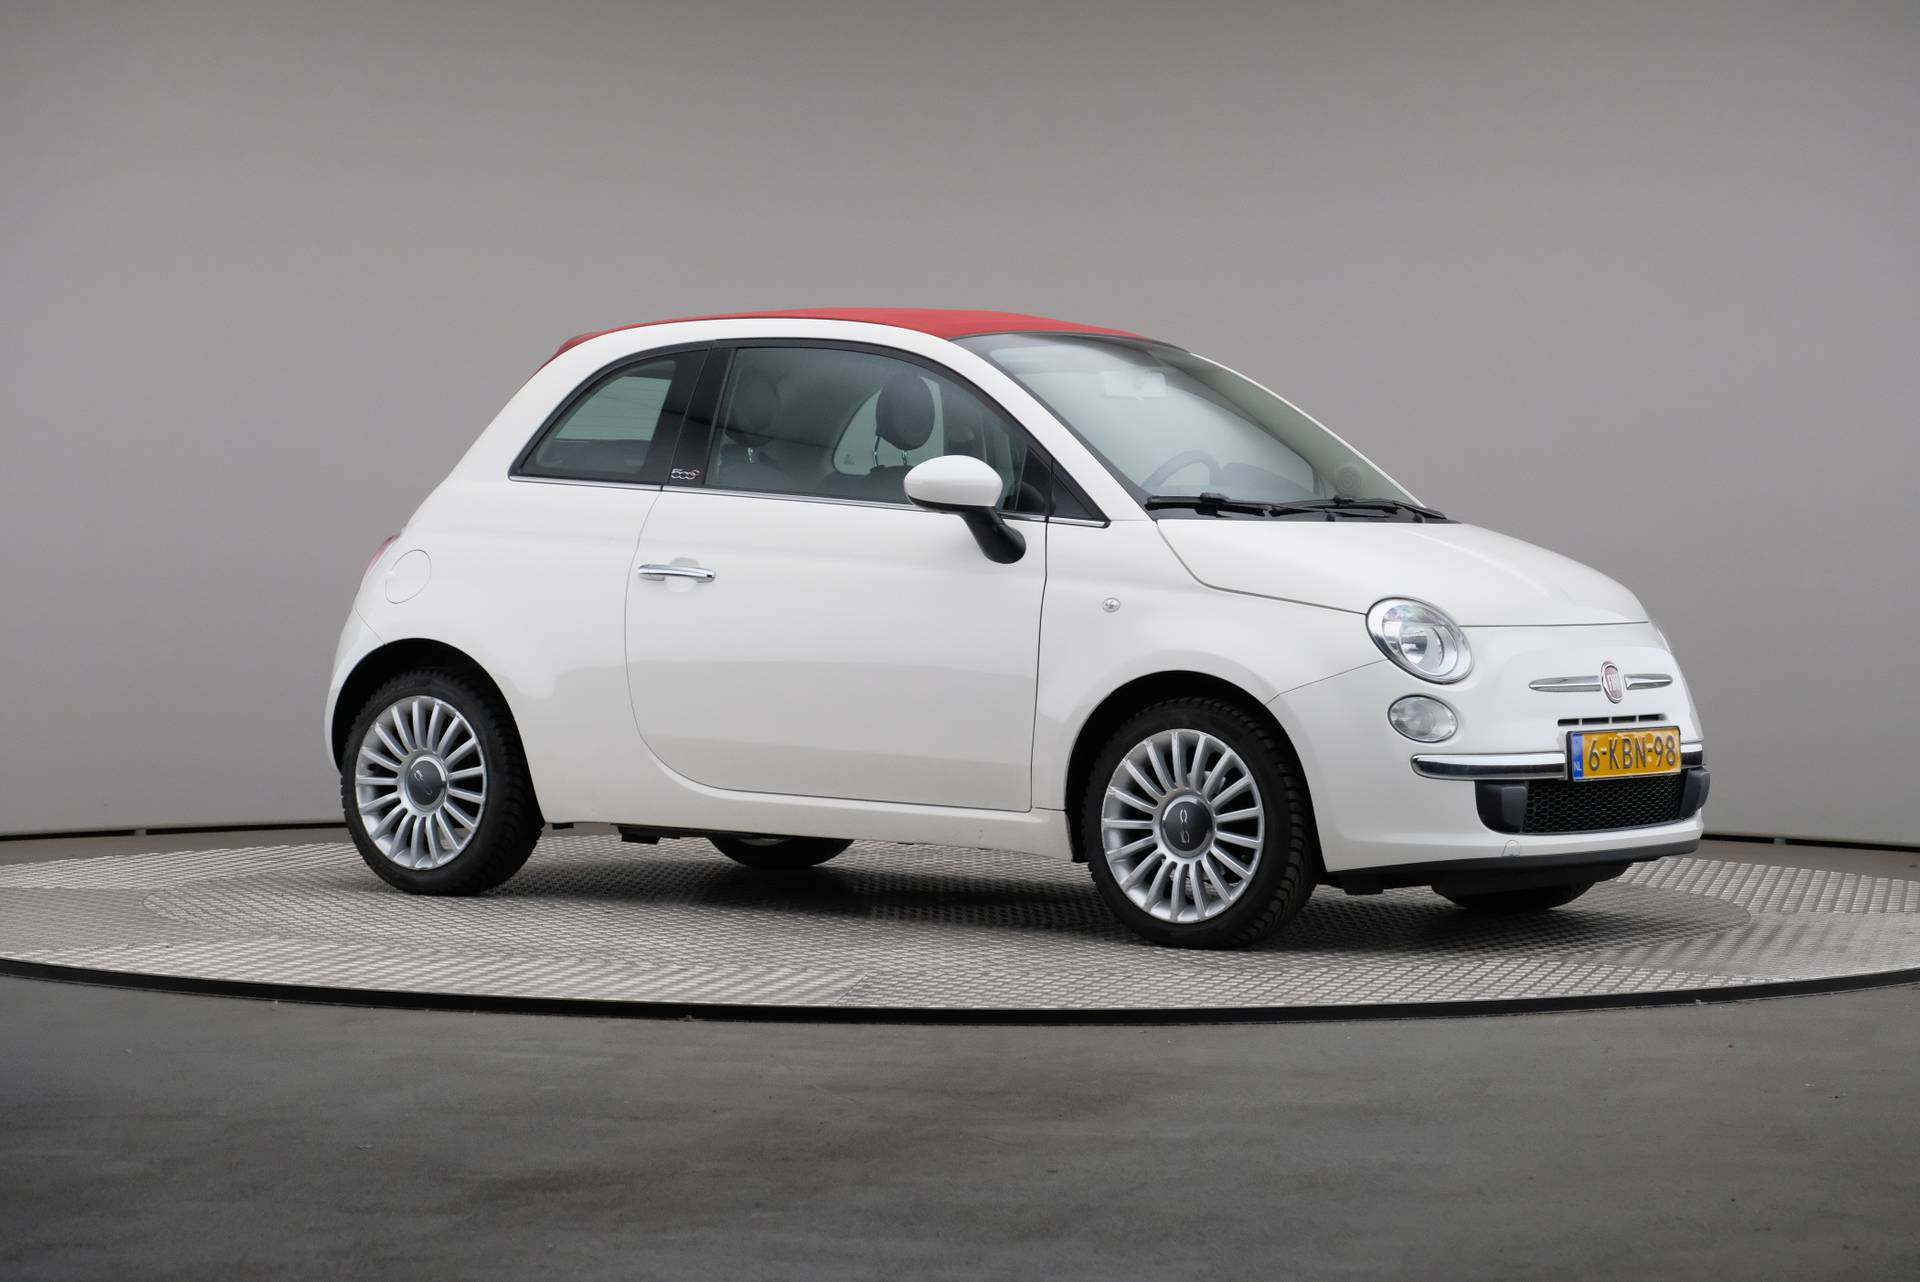 Fiat 500C TwinAir Turbo 85 Lounge, Airconditioning, 360-image27